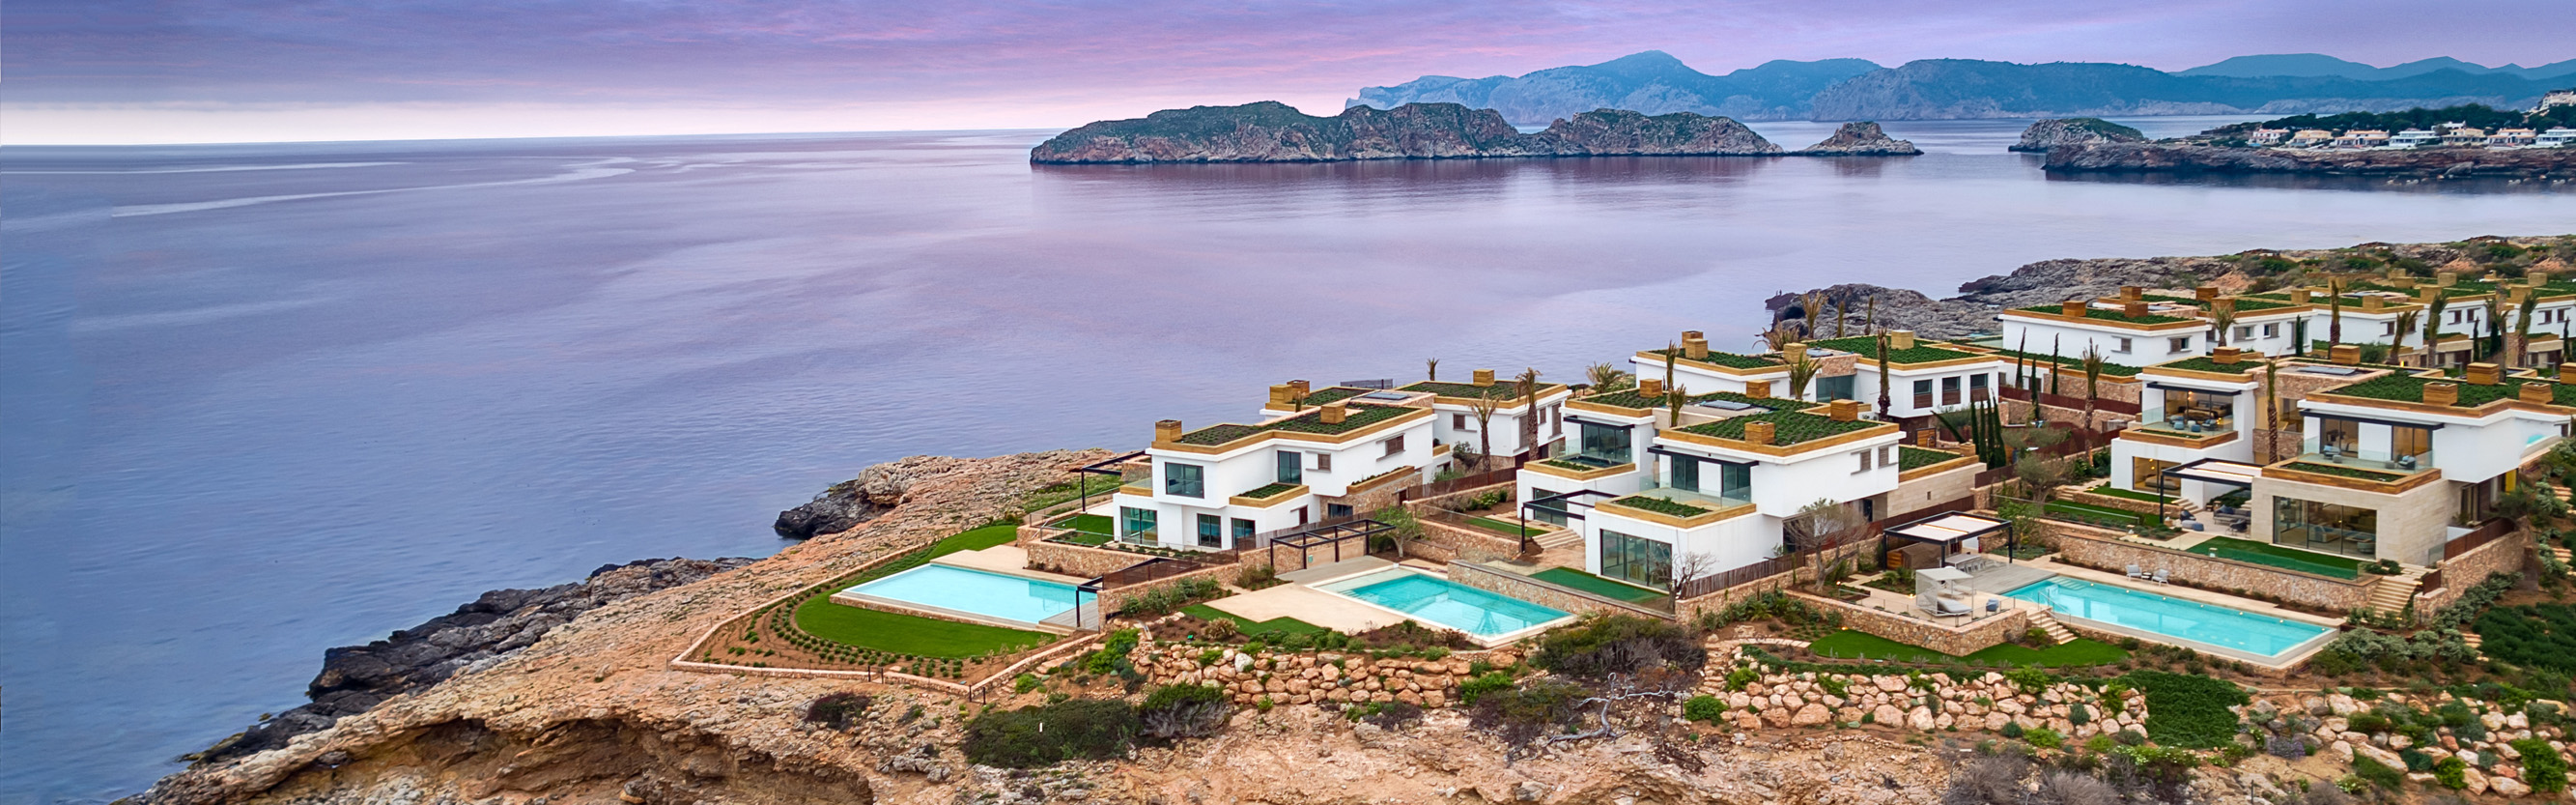 Balearen, Spanien - Cap Adriano - luxury villas for sale in Nova Santa Ponsa, Mallorca